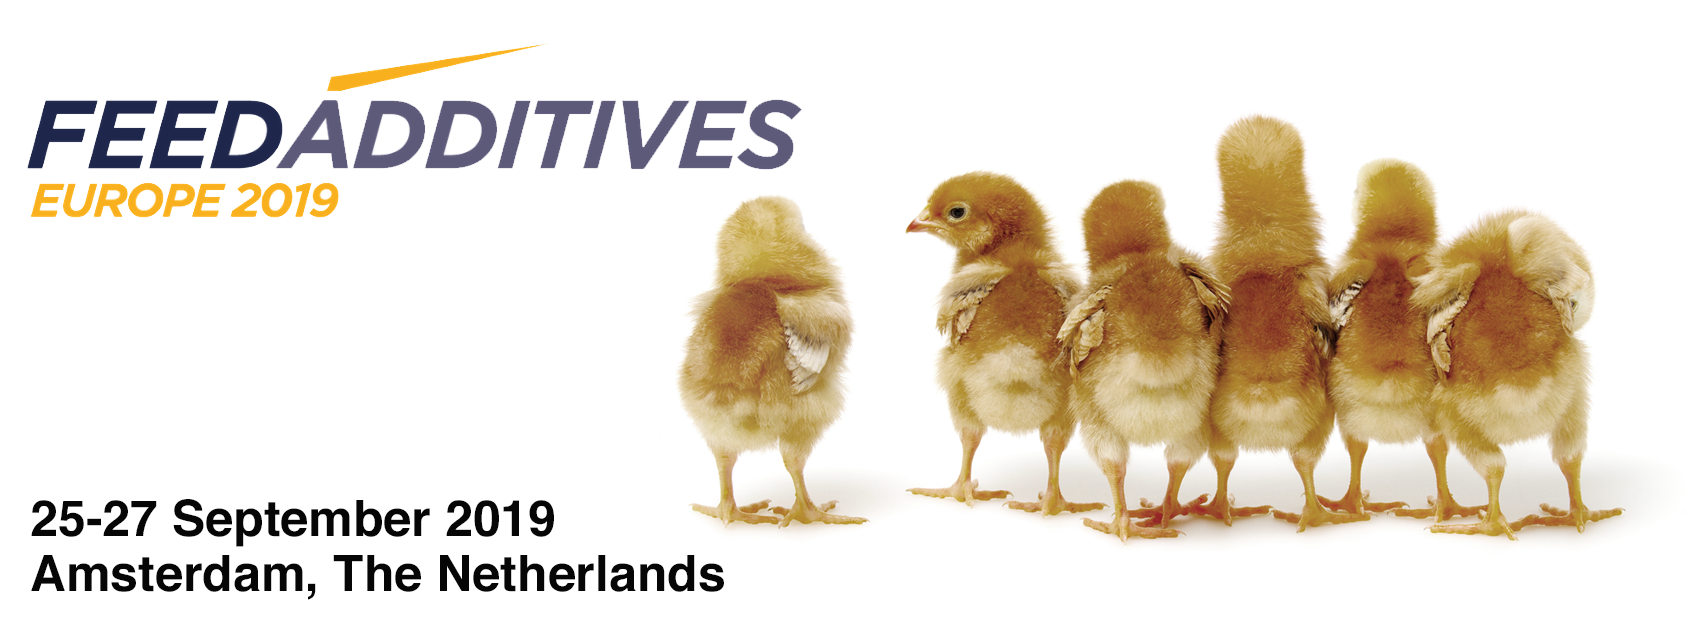 Feed Additives Europe 2019: The industry event for the specialty feed ingredients value chain